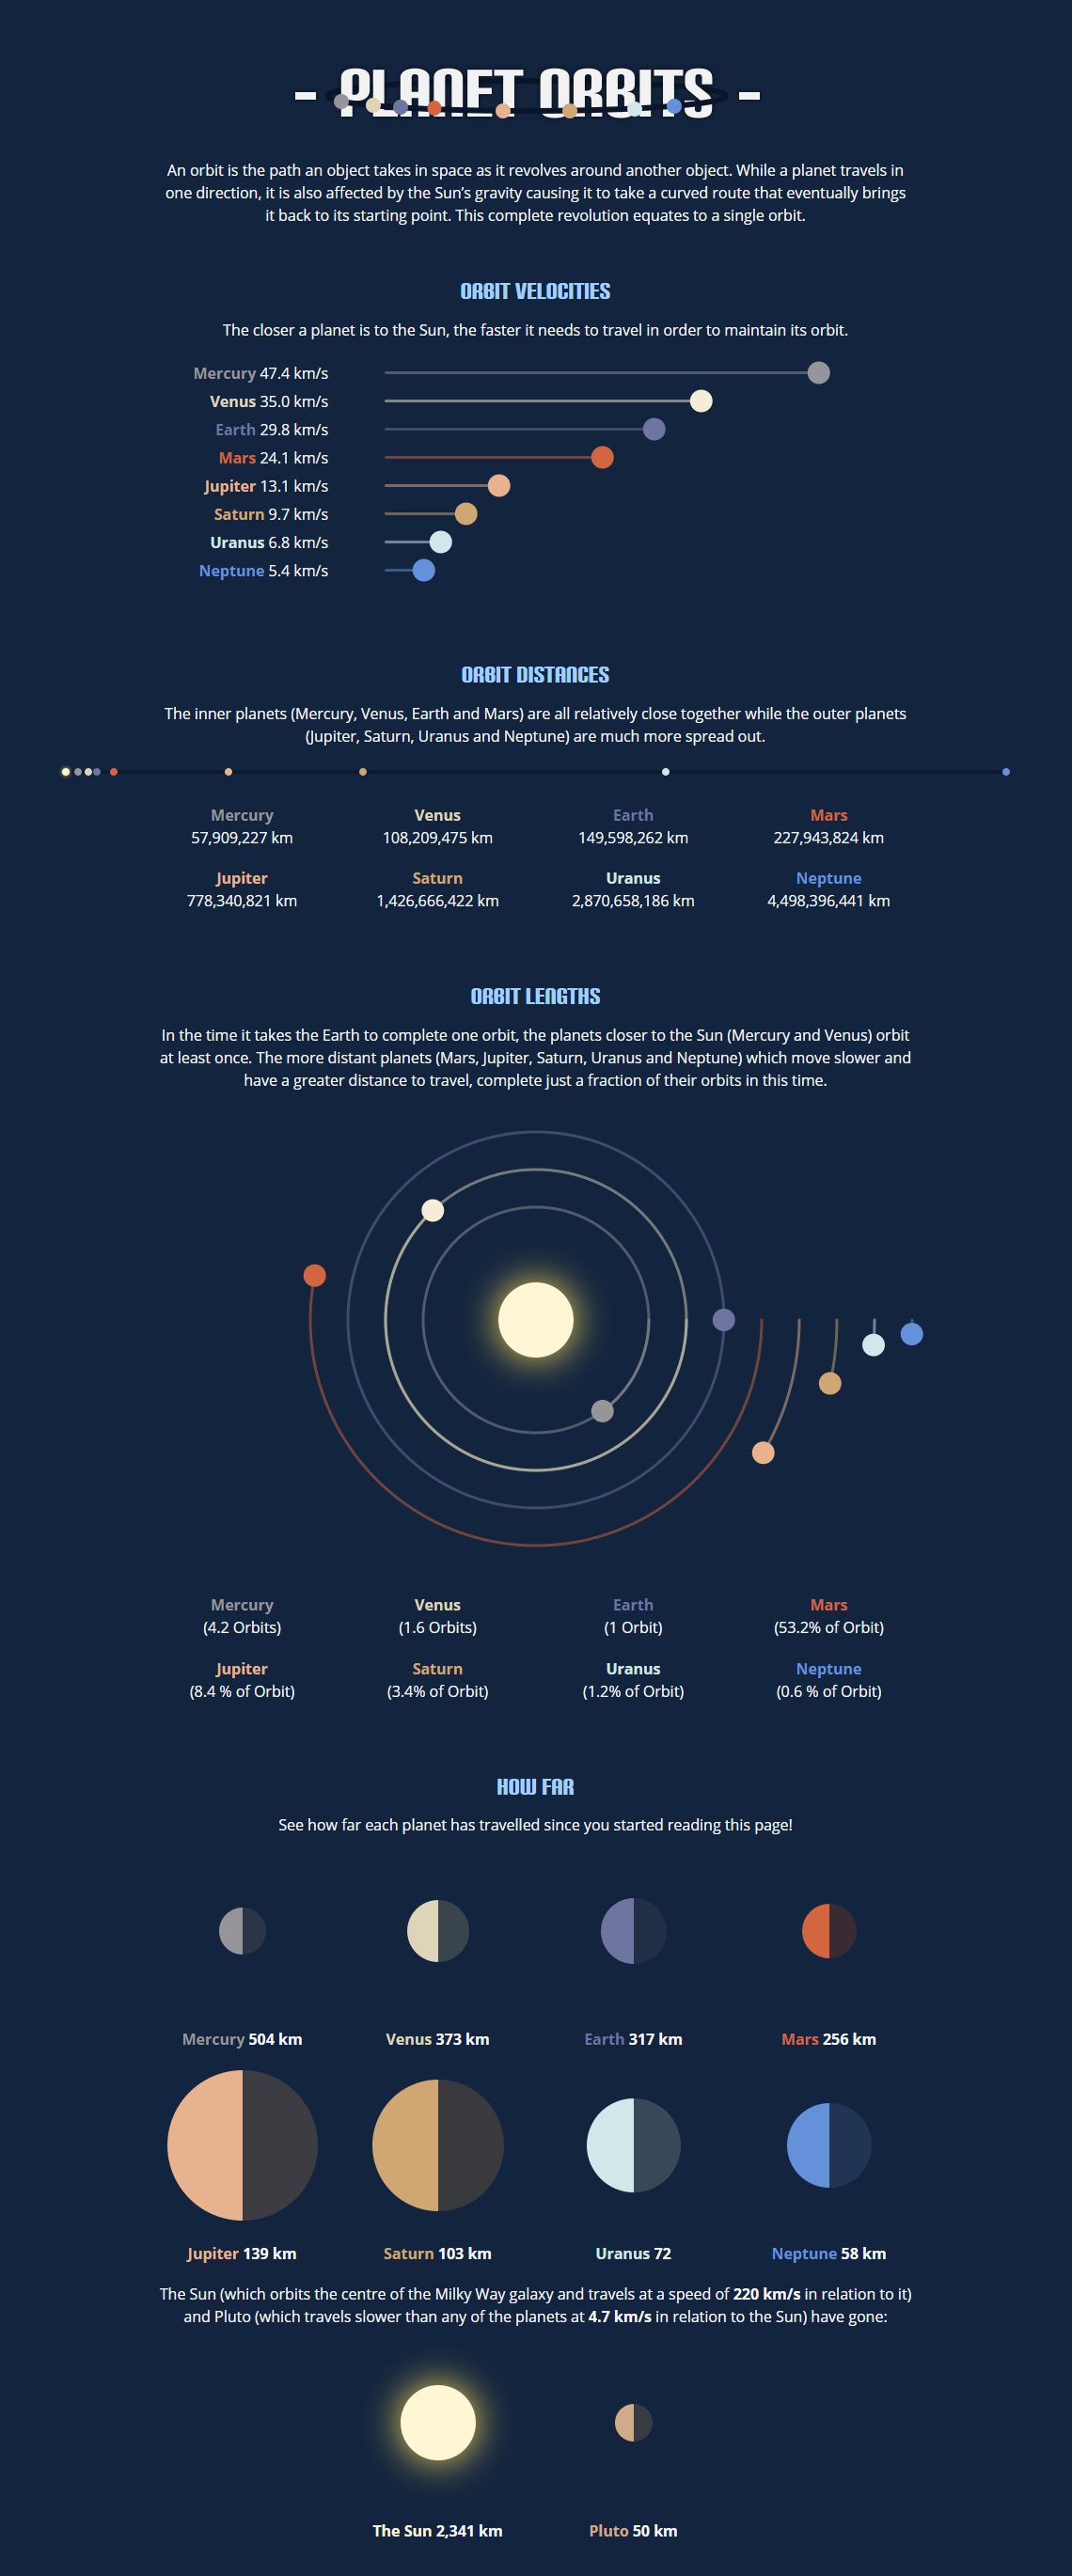 Planet Orbits – Space Facts